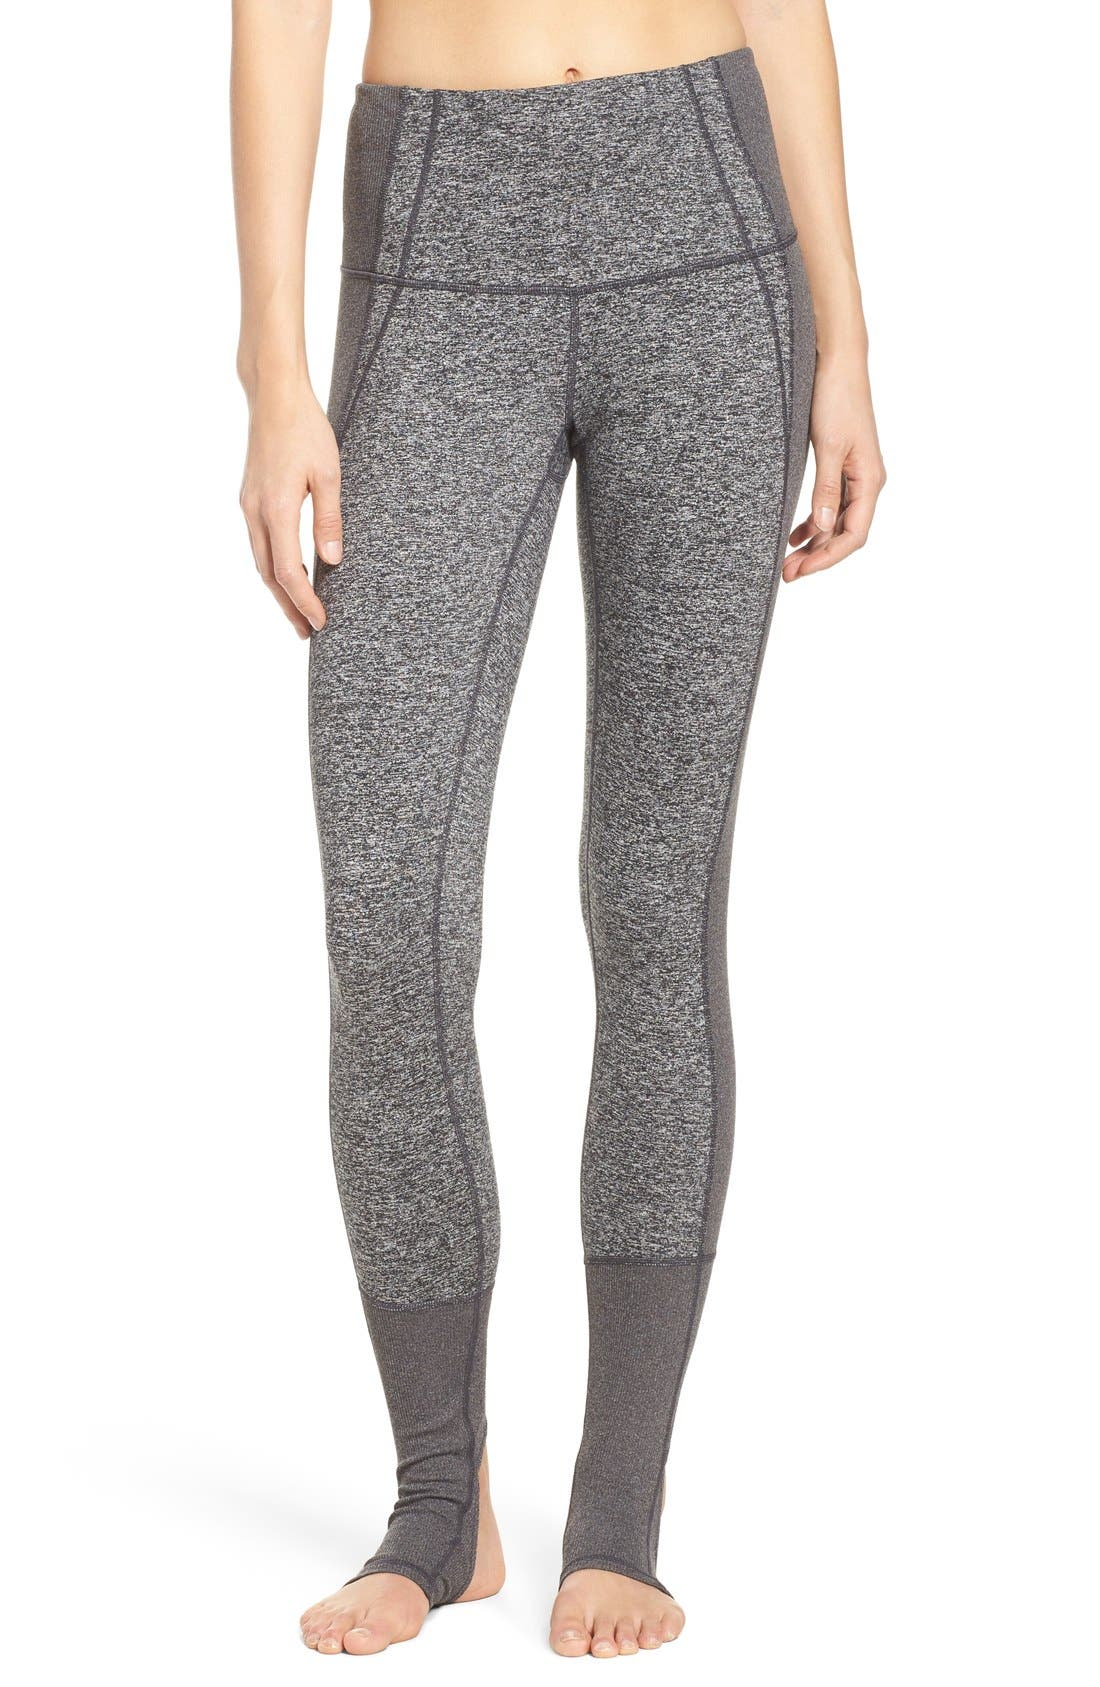 Zella Dance With Me High Waist Leggings